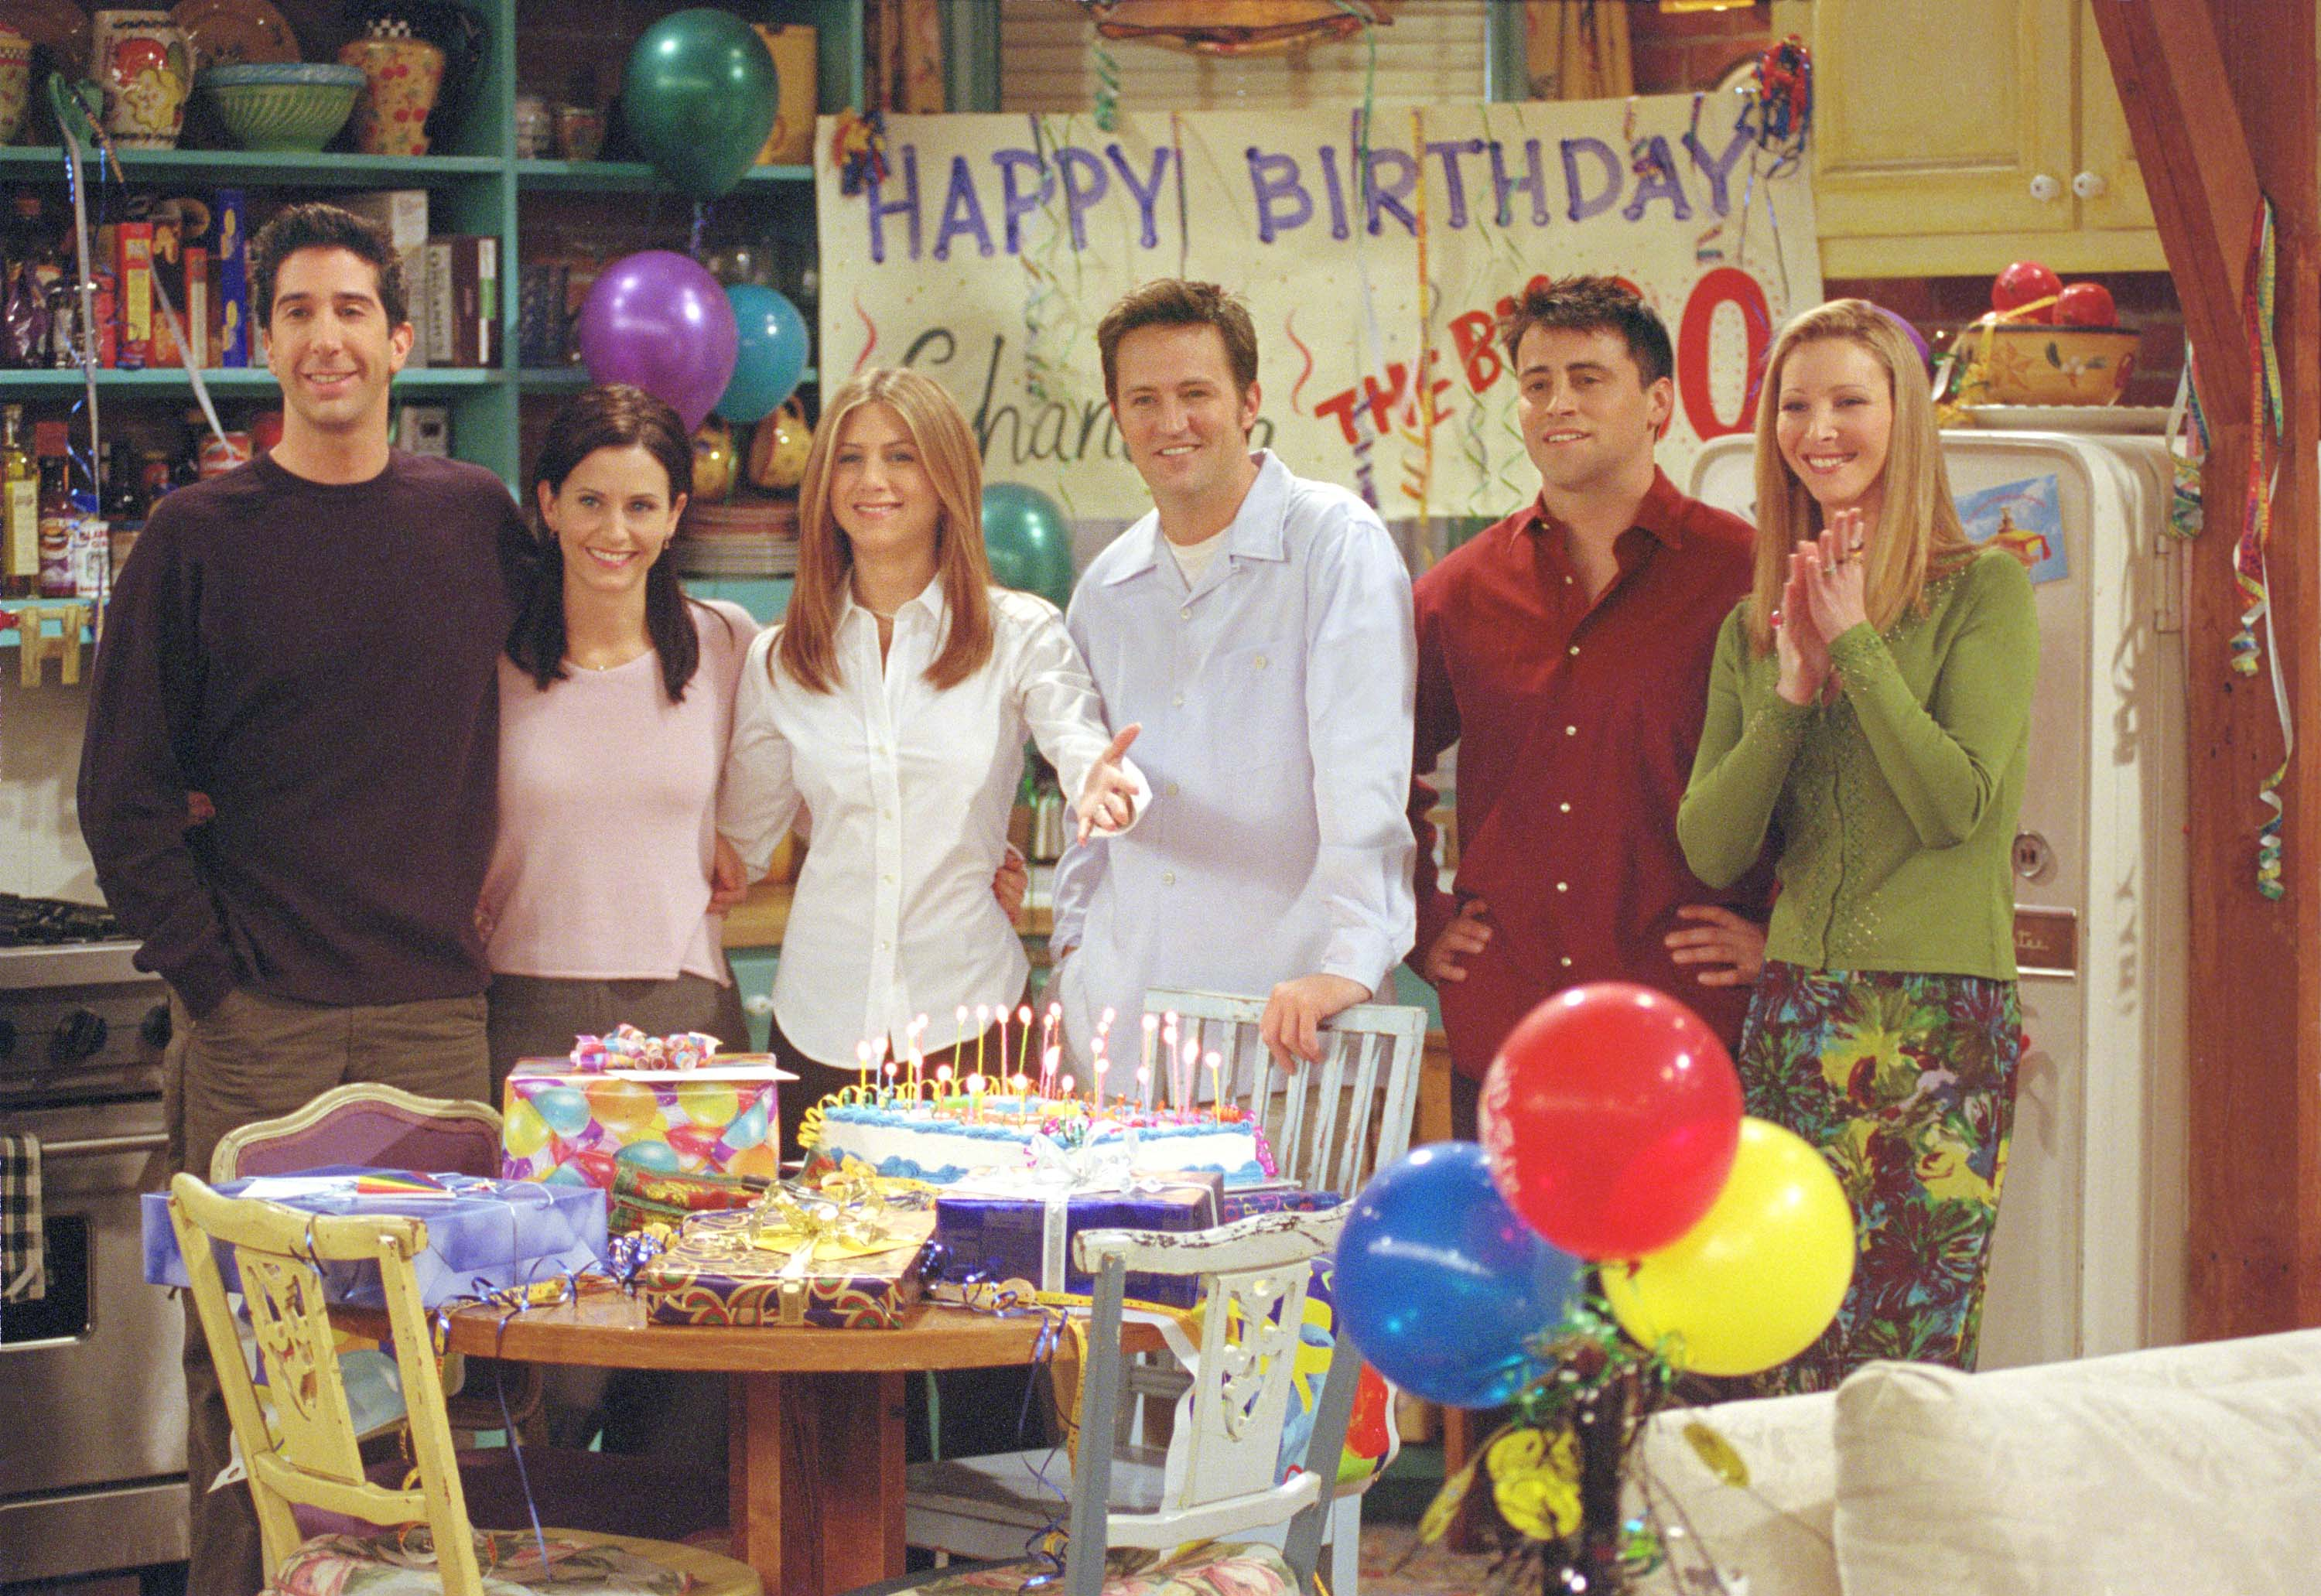 Cast members of NBC's comedy series 'Friends.' Pictured (L to R): David Schwimmer as Ross Geller, Courteney Cox as Monica Geller, Jennifer Aniston as Rachel Cook, Matthew Perry as Chandler Bing, Matt LeBlanc as Joey Tribbiani and Lisa Kudrow as Phoebe Buffay. Episode: 'The One Where They All Turn Thirty.' (Photo by Warner Bros. Television)